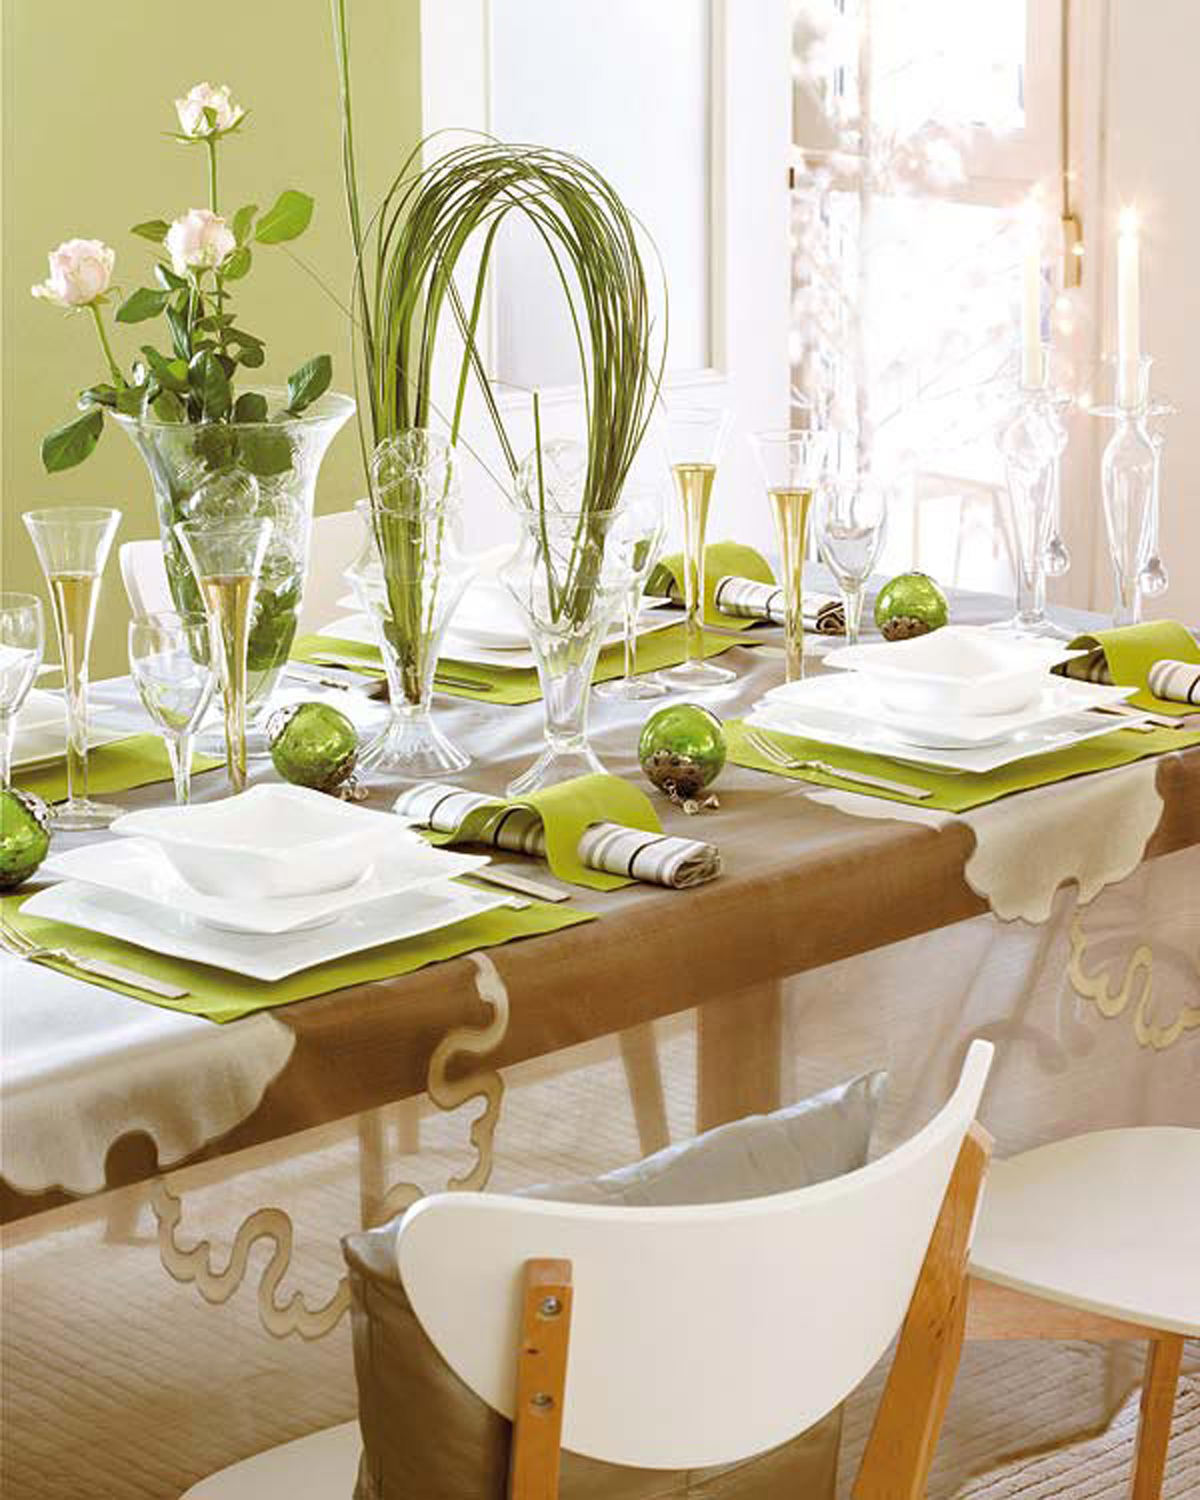 Dining Room Table Decoration Ideas Dining Room Christmas Decorating Ideas - Iroonie.com